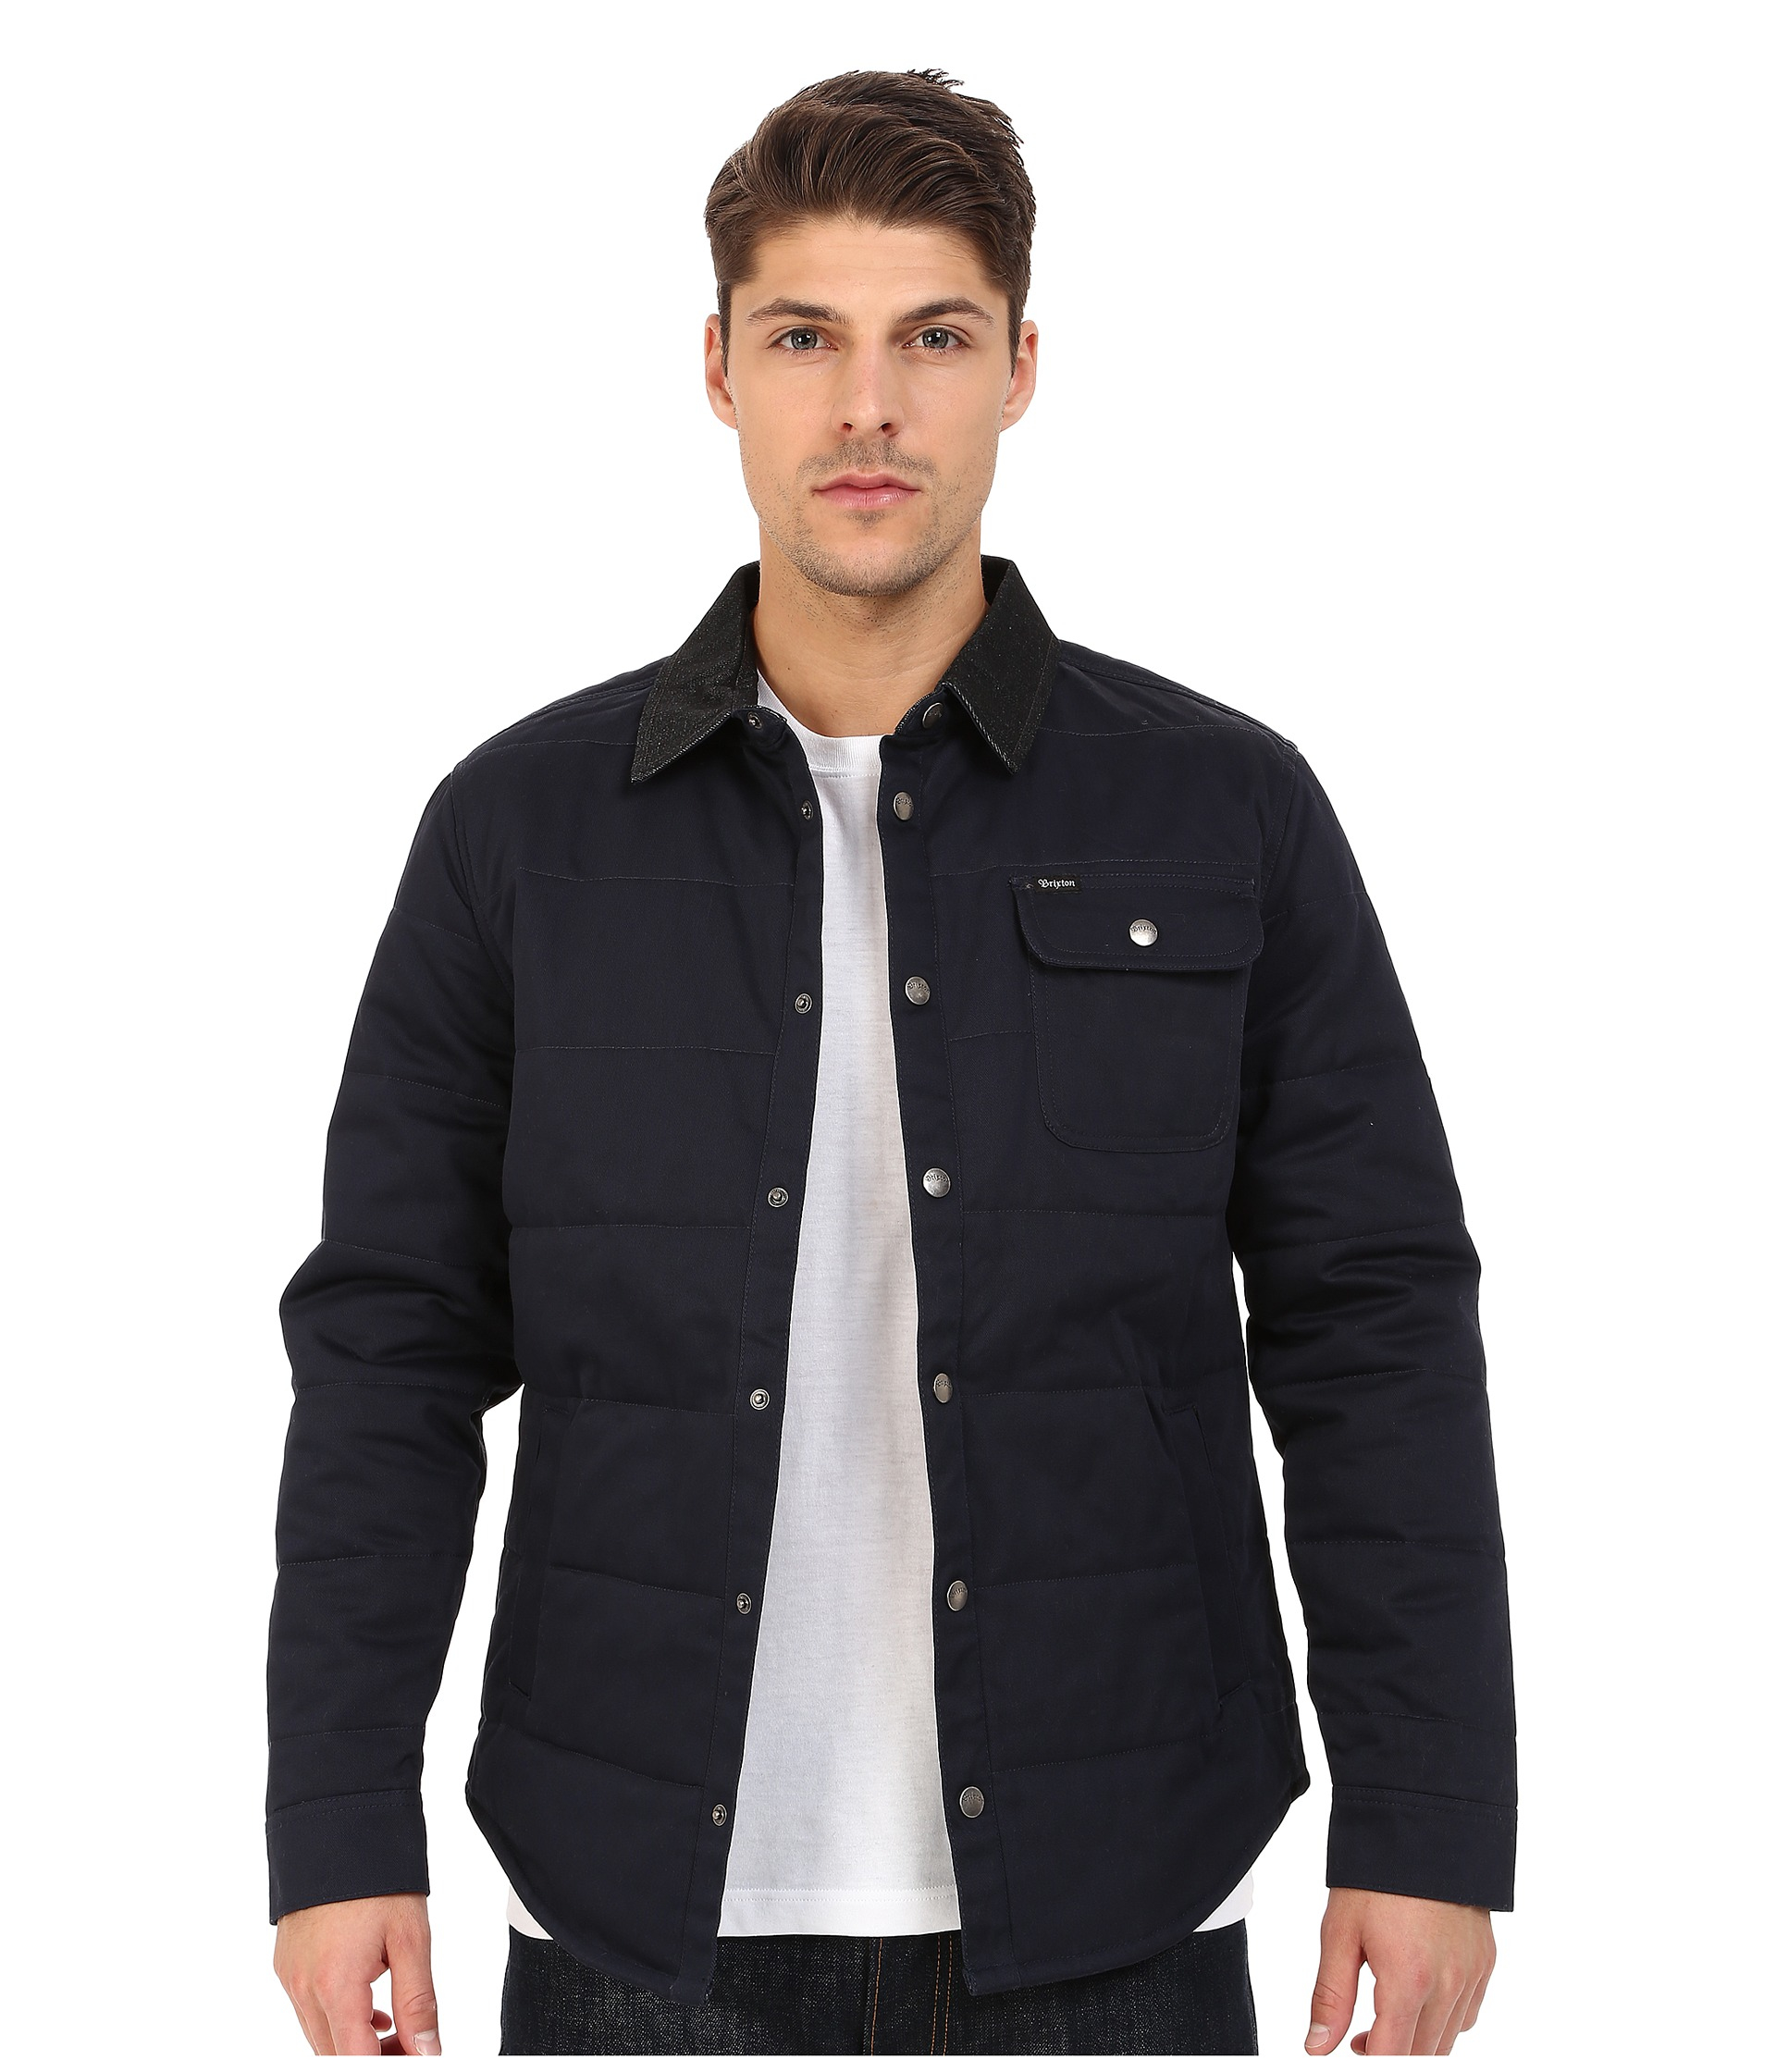 Lyst - Brixton Cass Jacket in Blue for Men 5343eb9211c